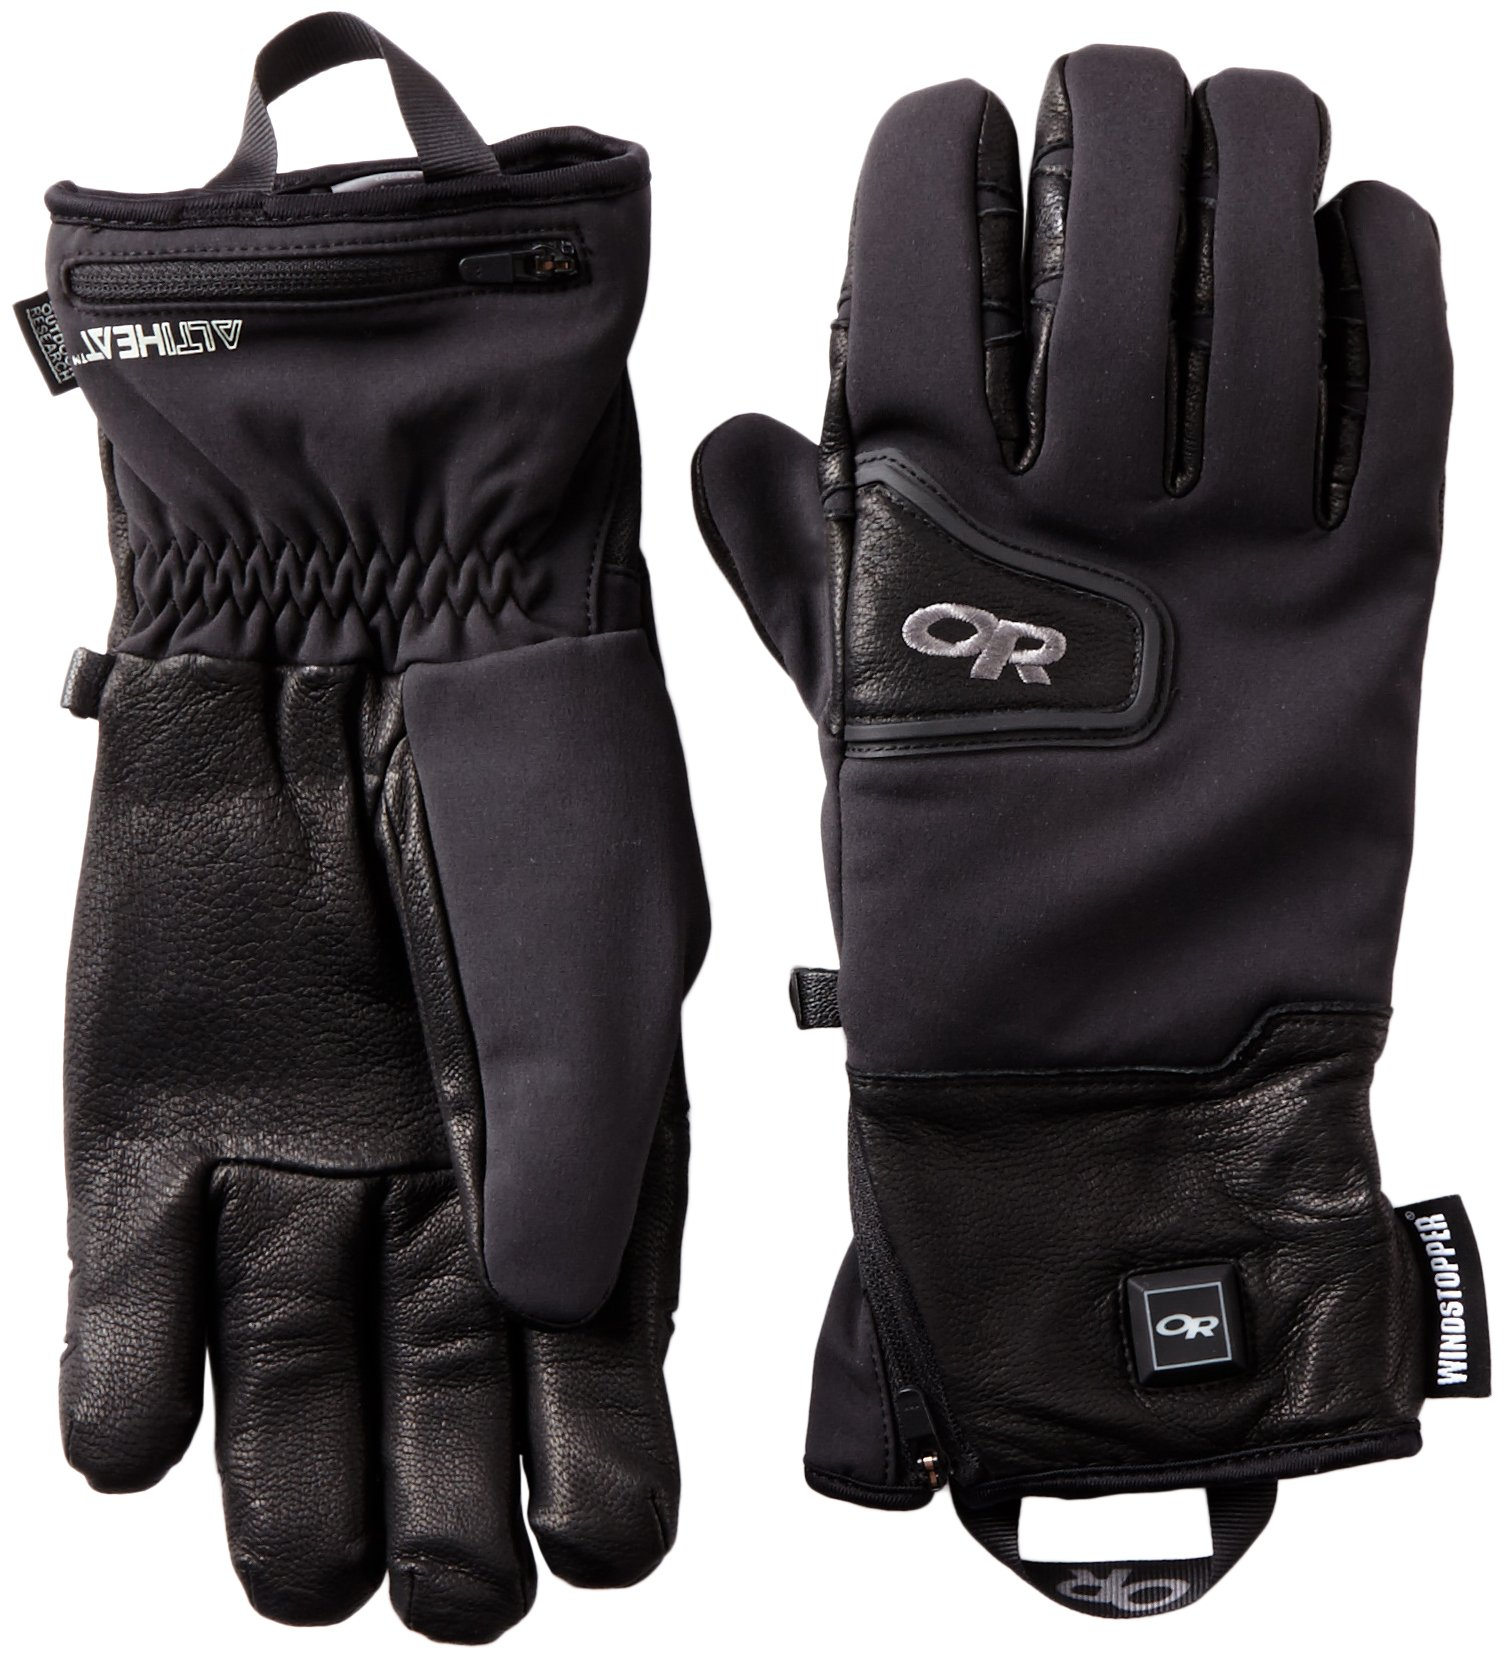 Outdoor Research Stormtracker Heated Gloves, Black, Large by Outdoor Research